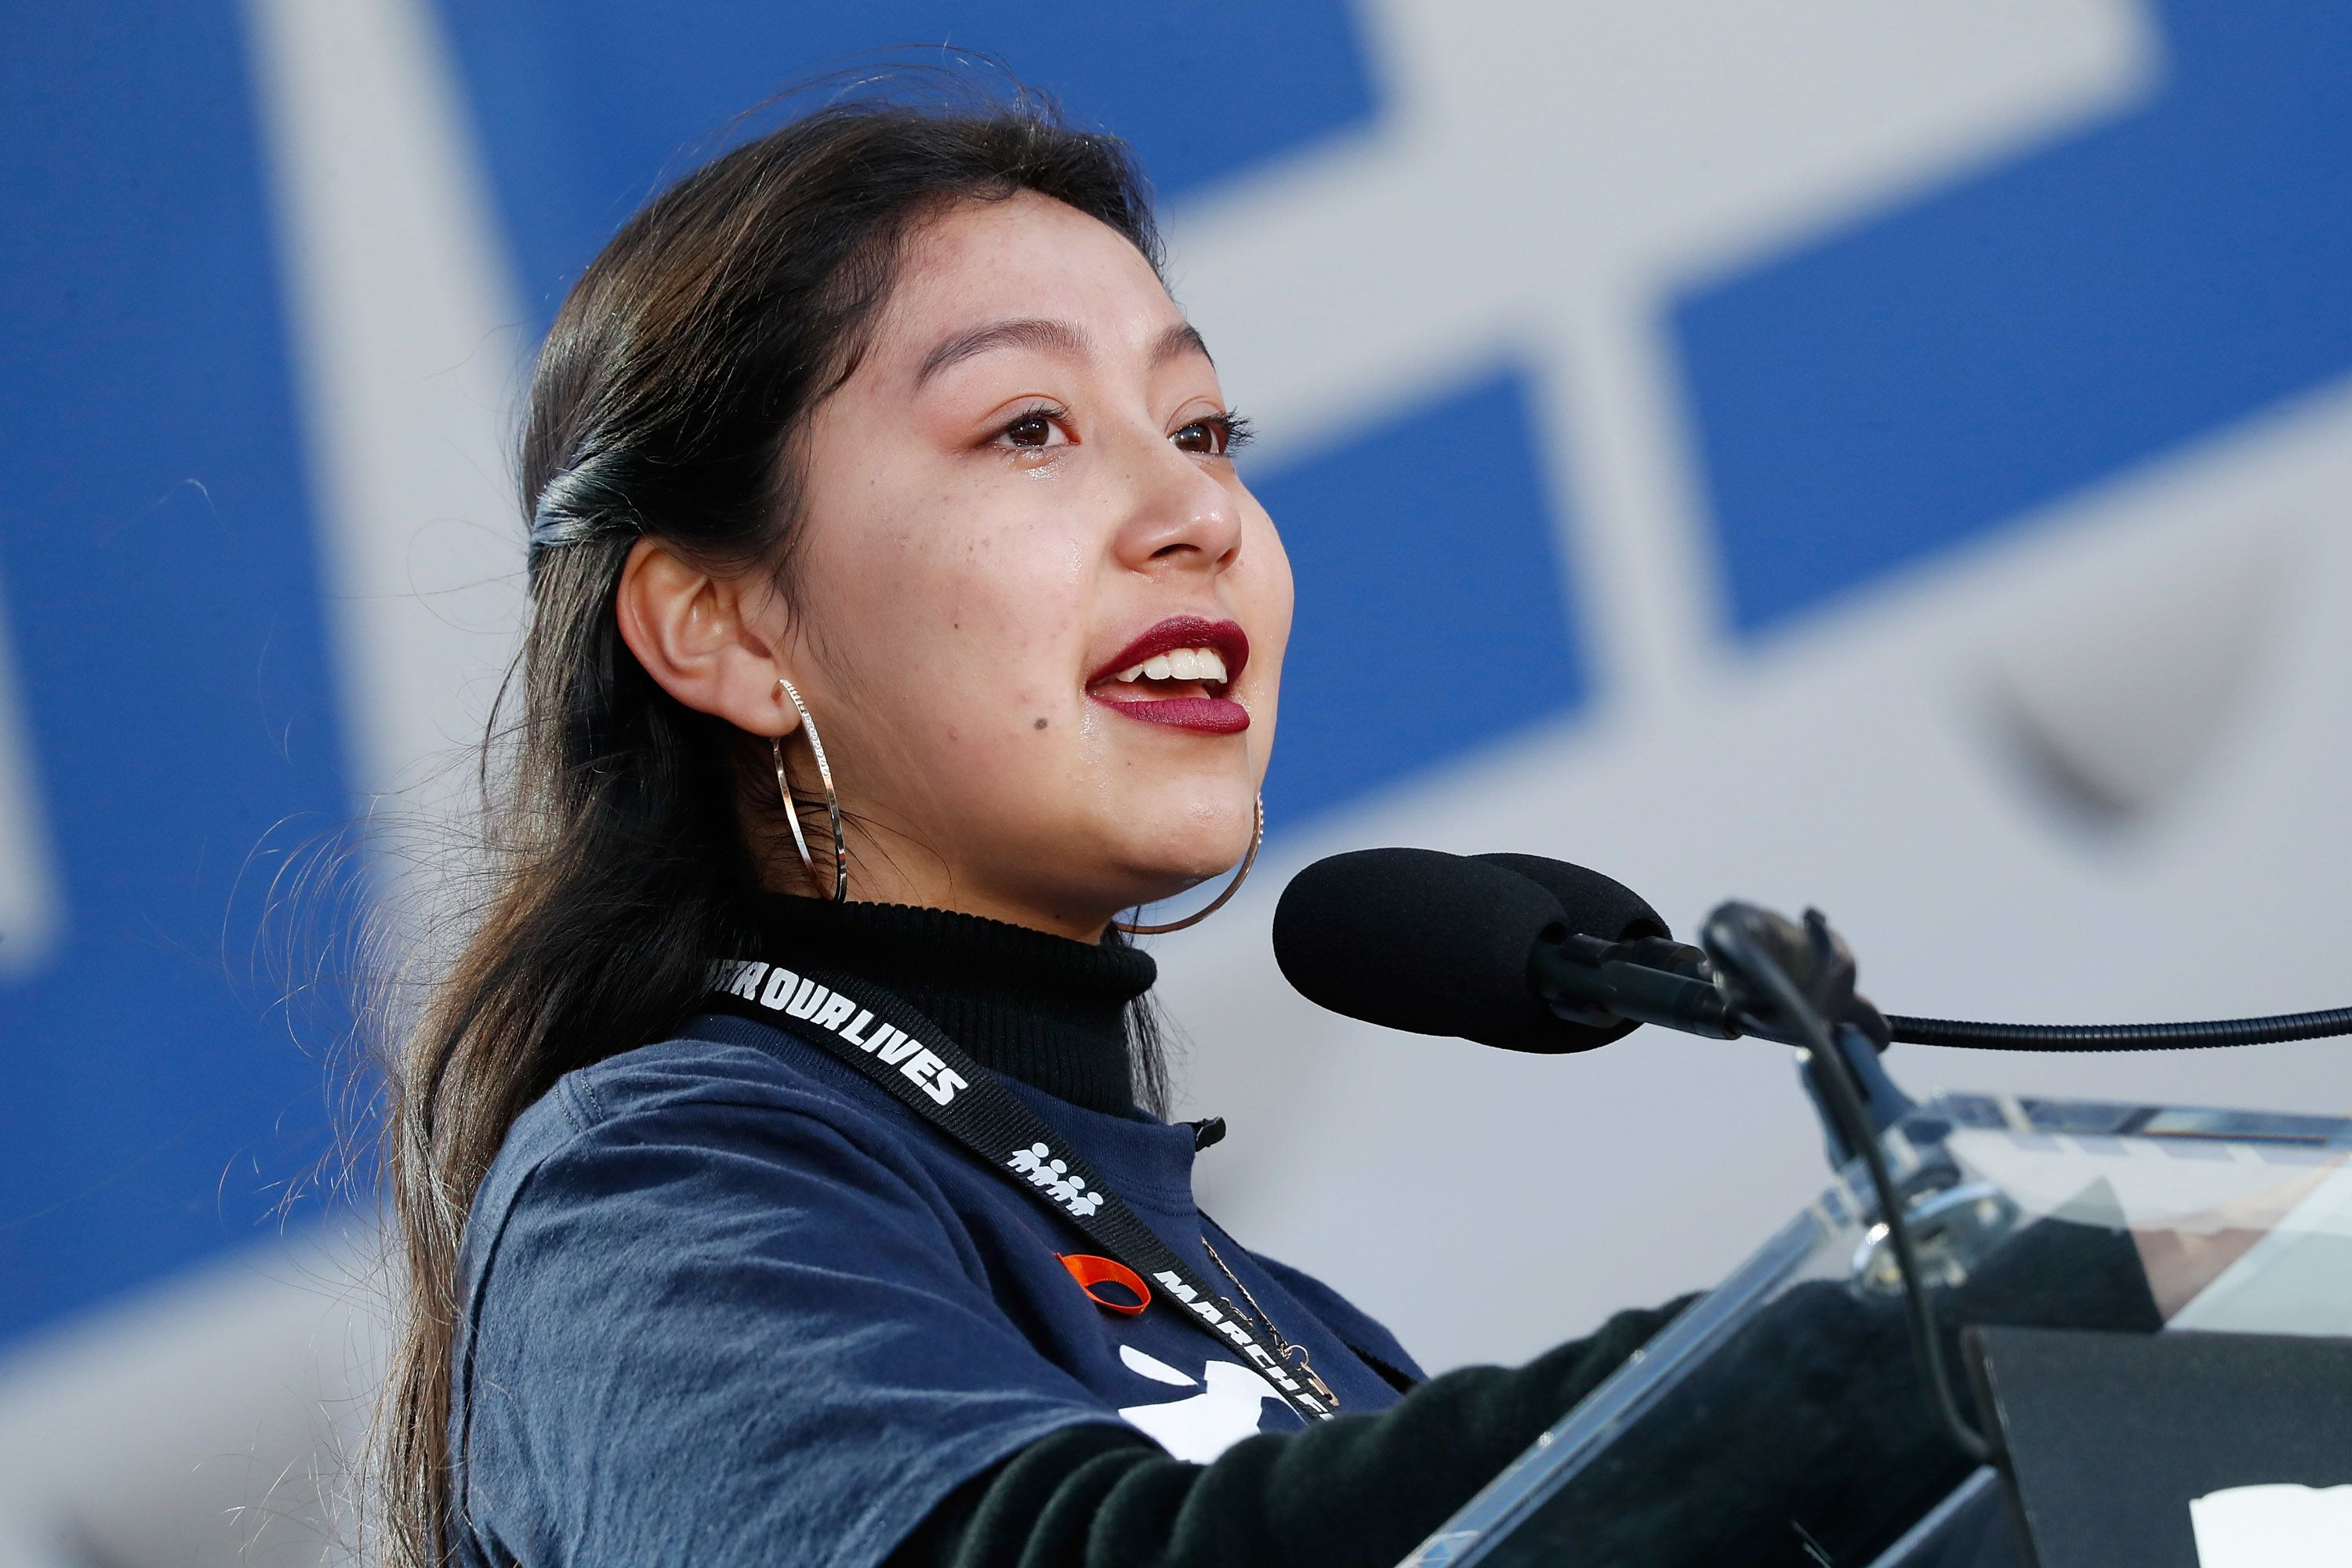 WASHINGTON, DC - MARCH 24:  California high school student Edna Chavez speaks onstage at March For Our Lives on March 24, 2018 in Washington, DC.  (Photo by Paul Morigi/Getty Images for March For Our Lives)